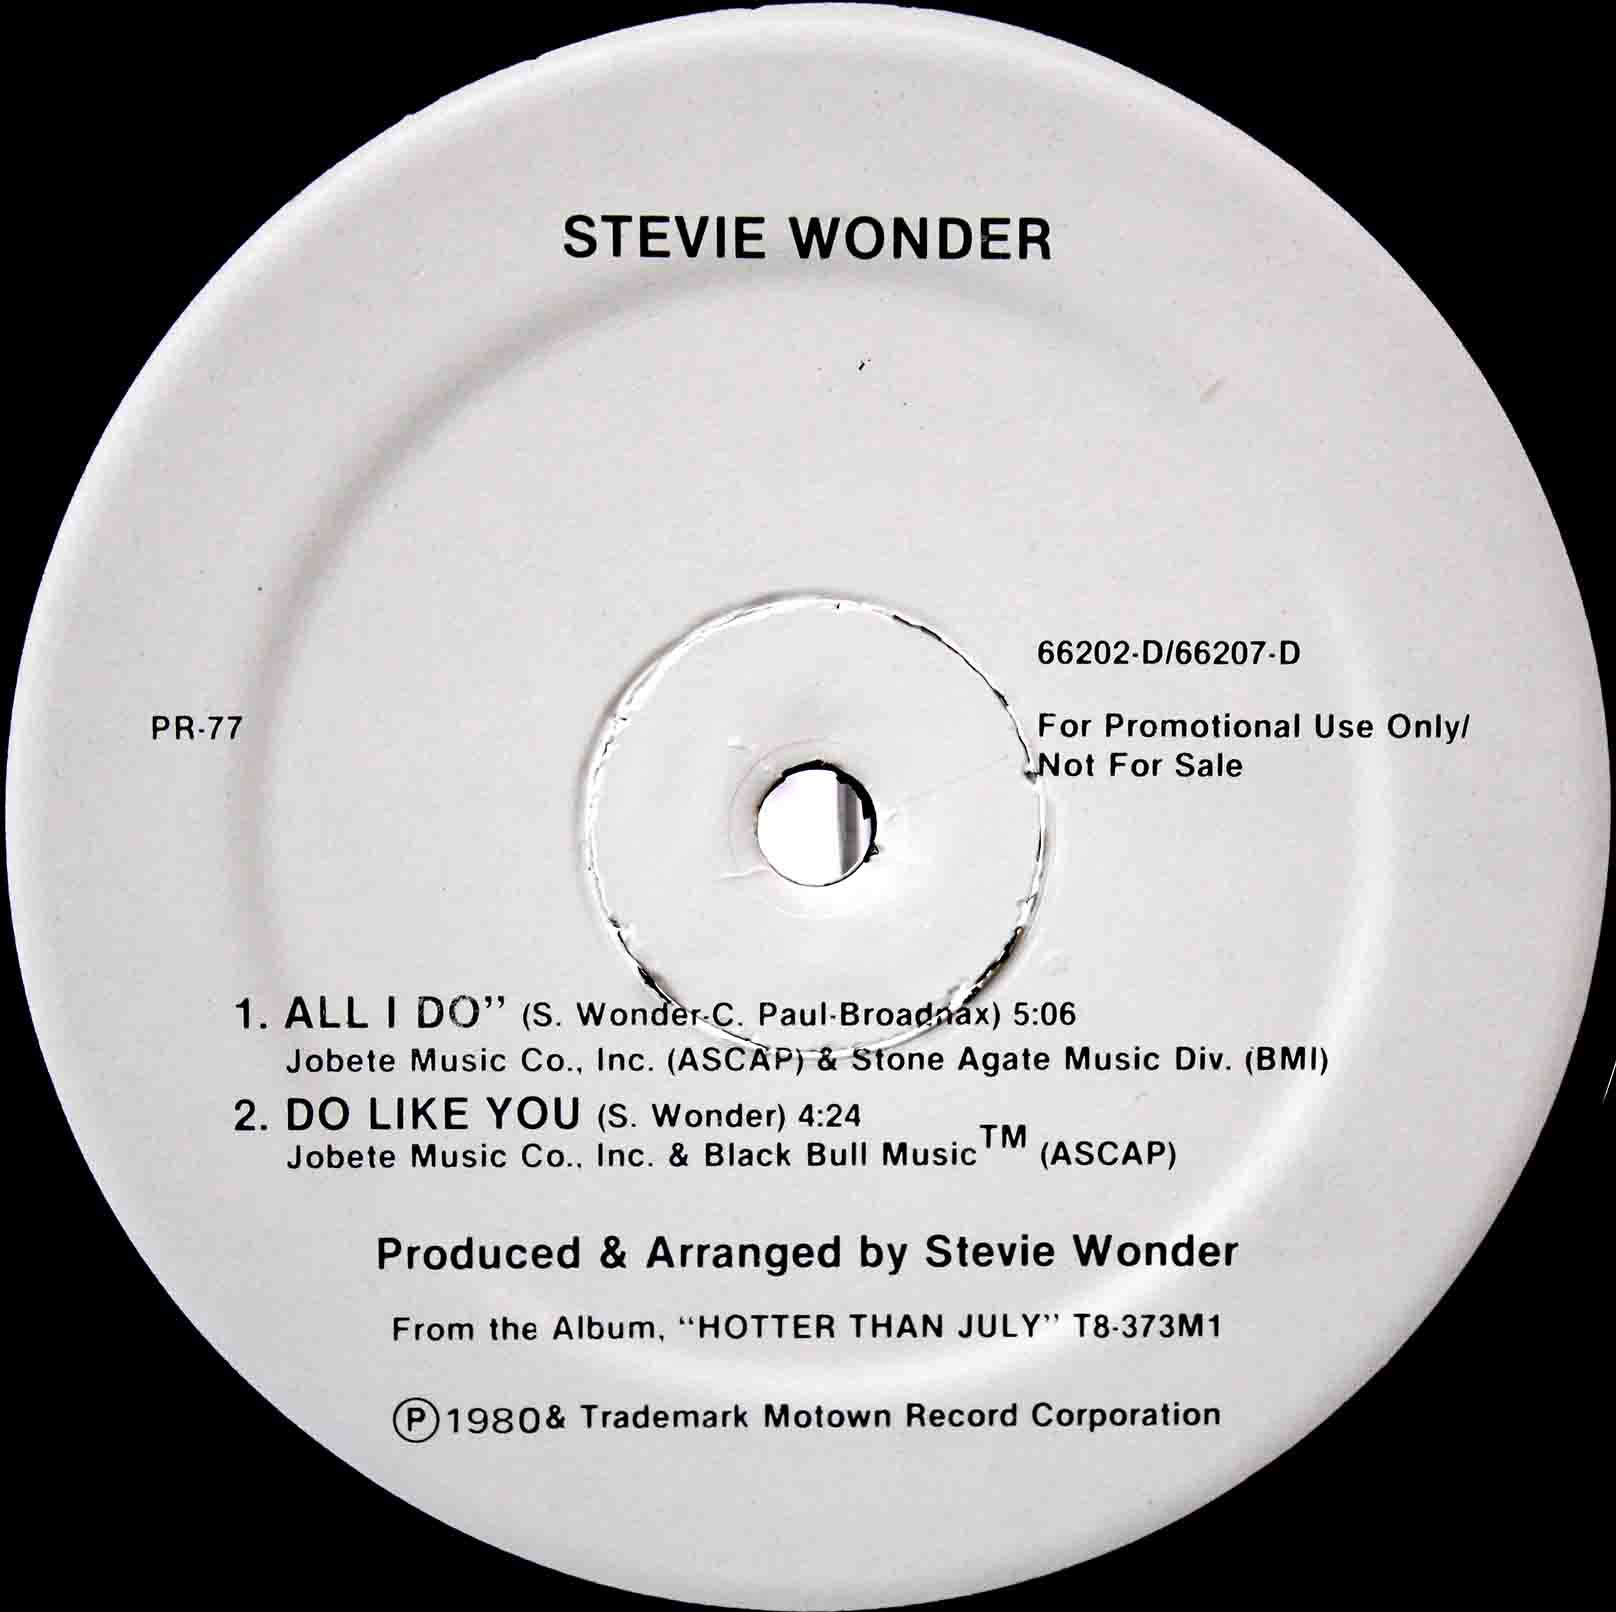 Stevie Wonder - do like you 02